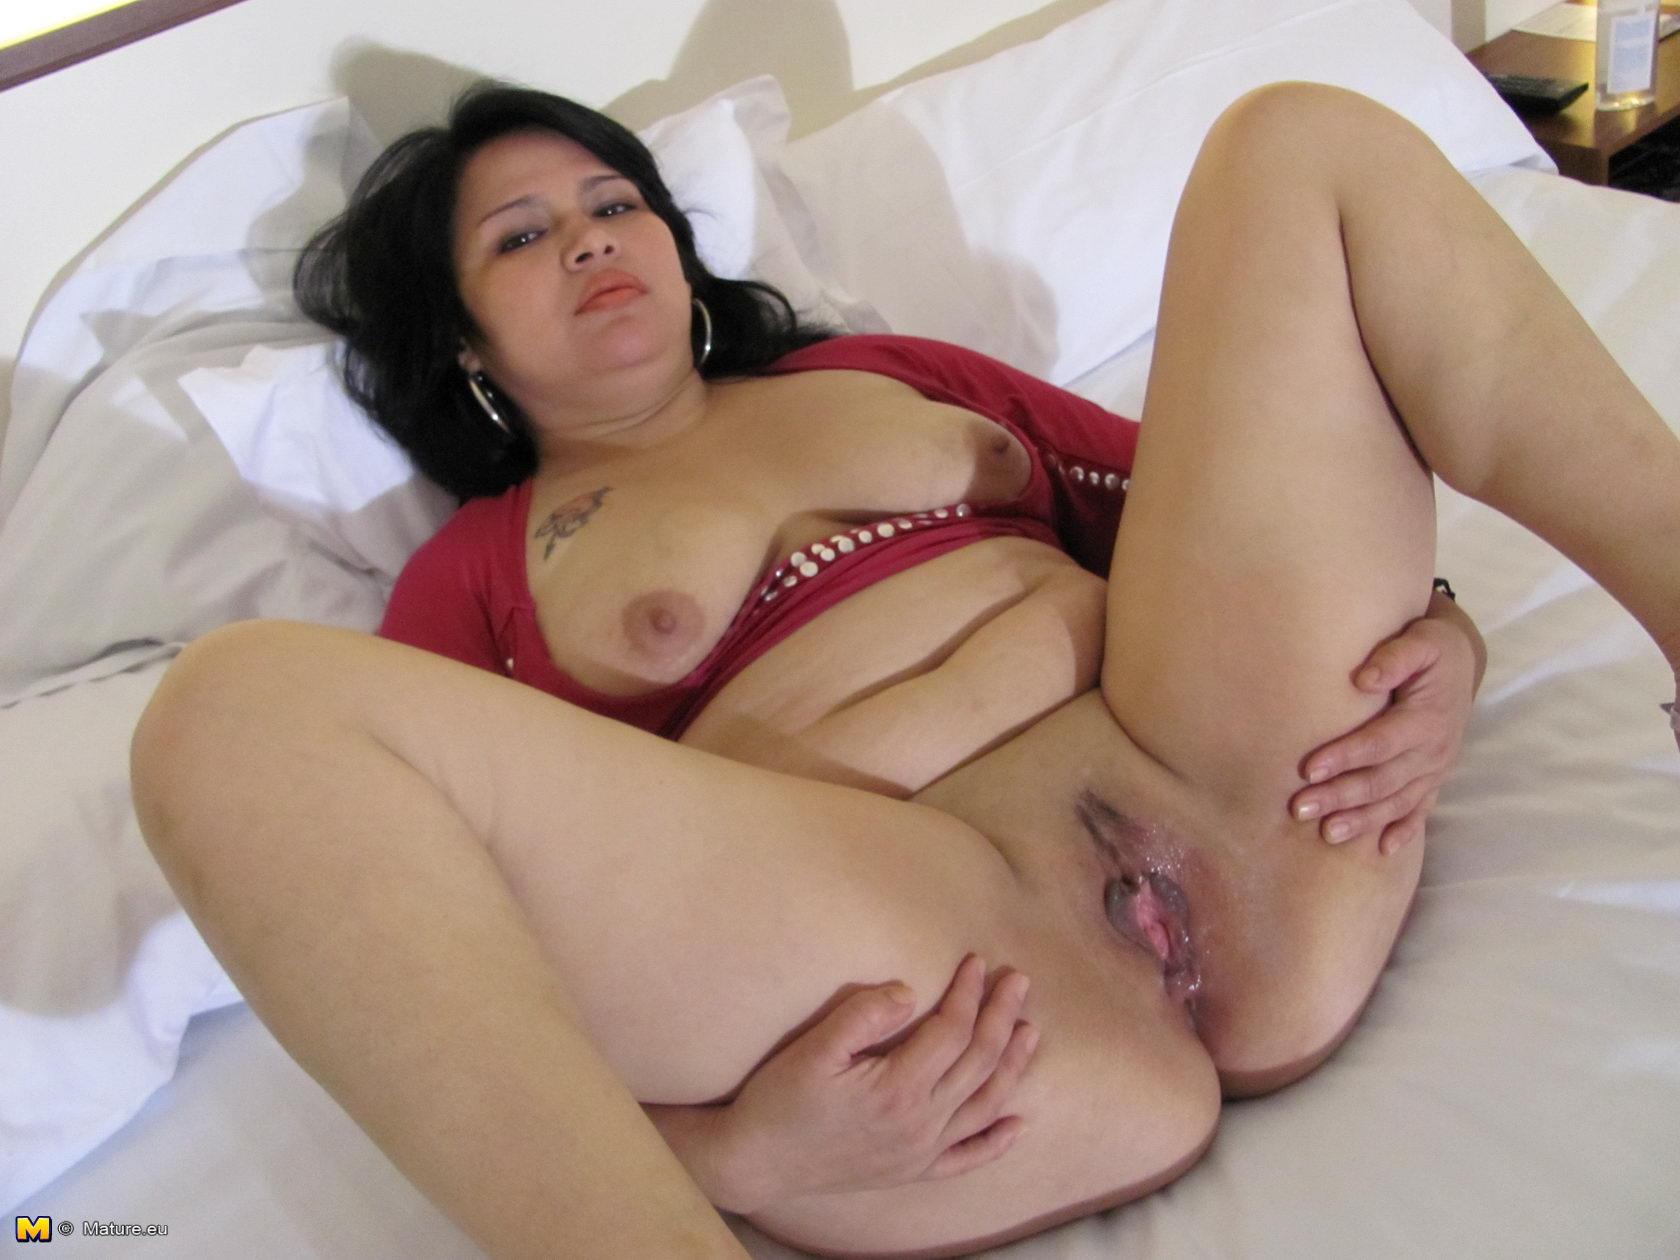 Smooth pussies of mature women